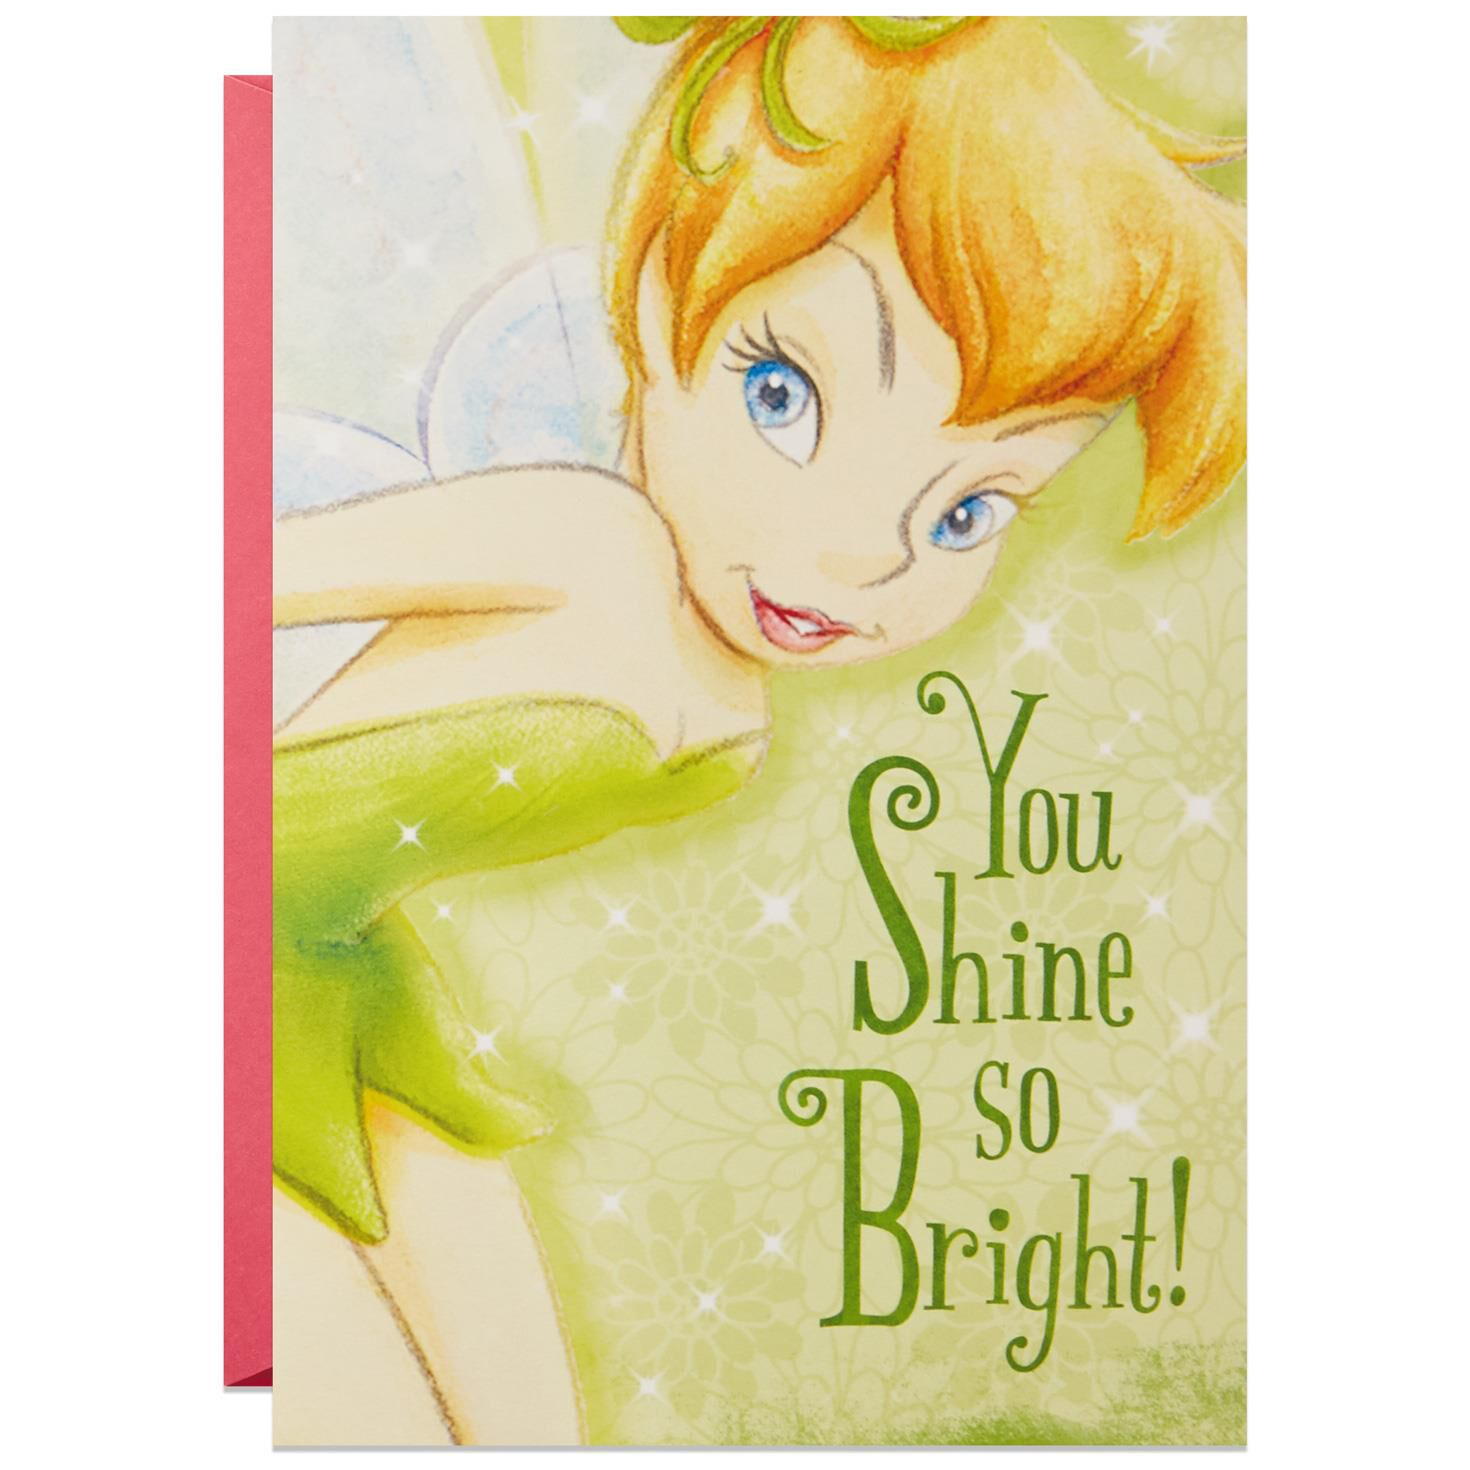 Tinker Bell More Amazing Every Year Musical Birthday Card With Light Greeting Cards Hallmark Jpg 1024x1024